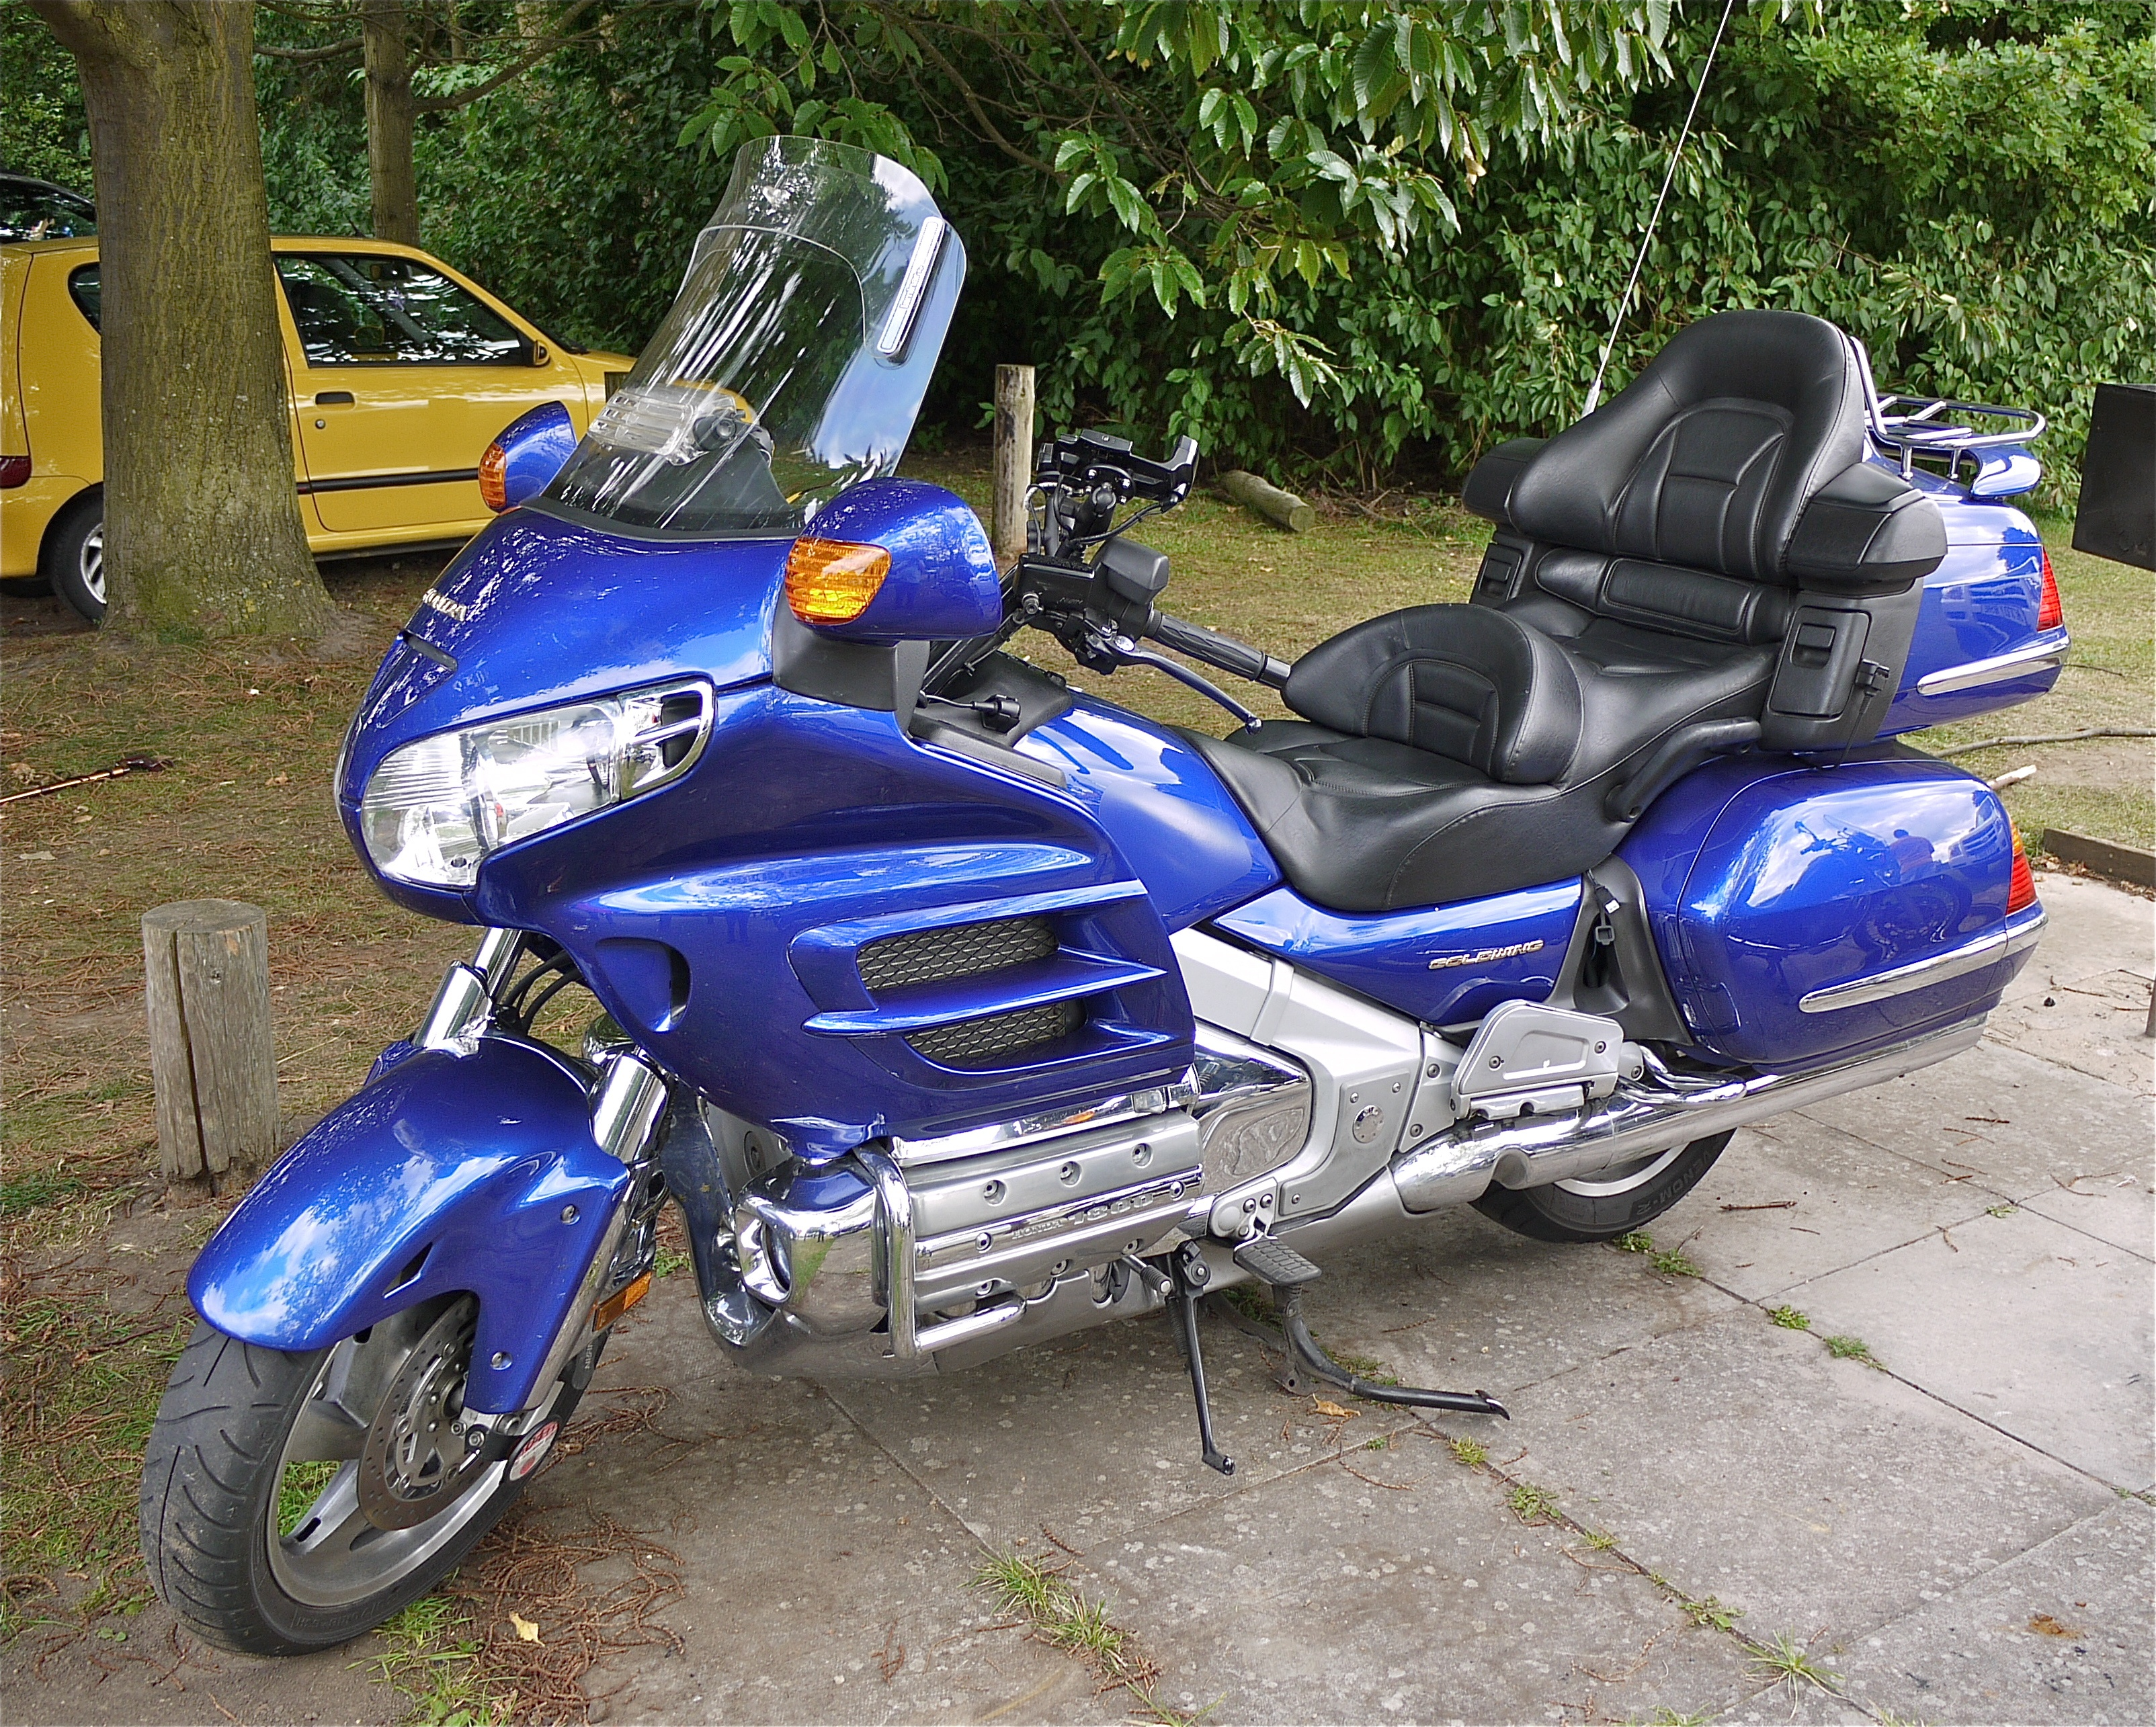 Honda GL 1800 Gold Wing images #83180